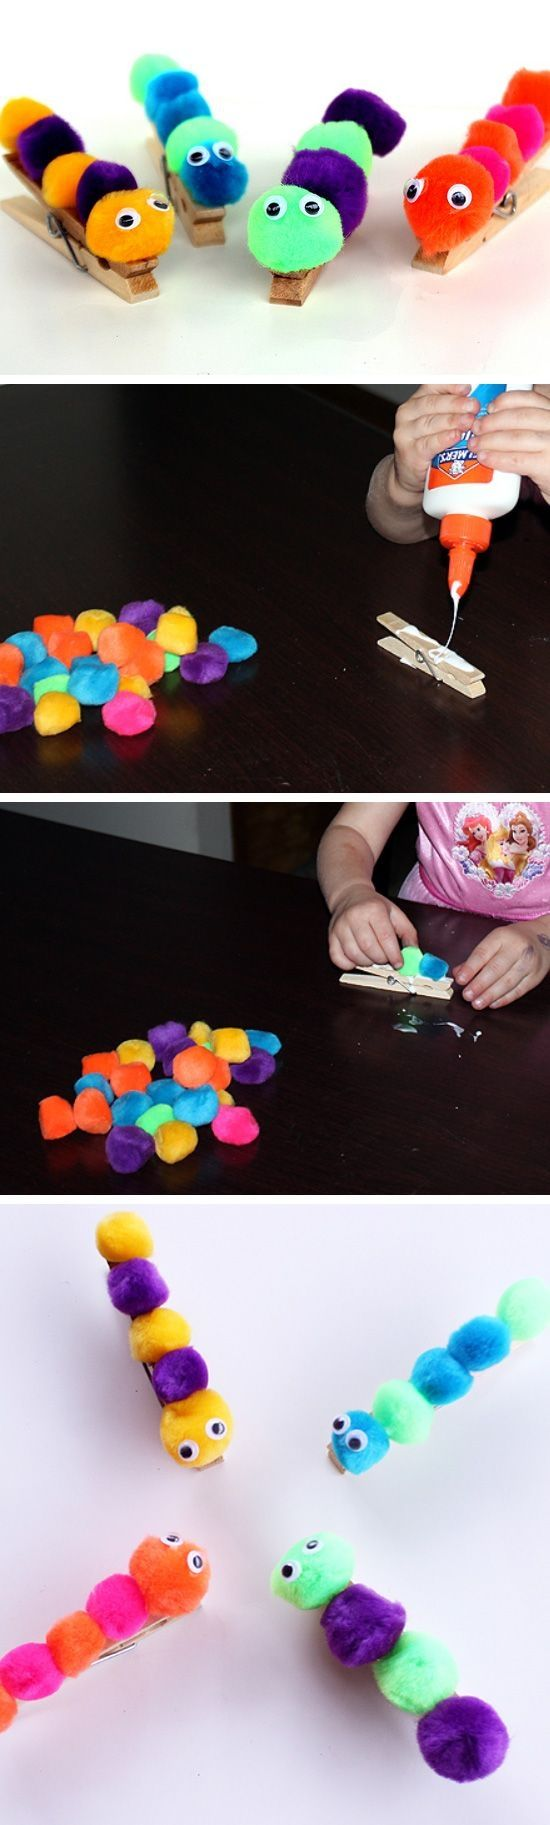 Caterpillar Craft   Click Pic for 22 DIY Spring Crafts for Kid to Make   Easy Spring Craft Ideas for Toddlers by melva